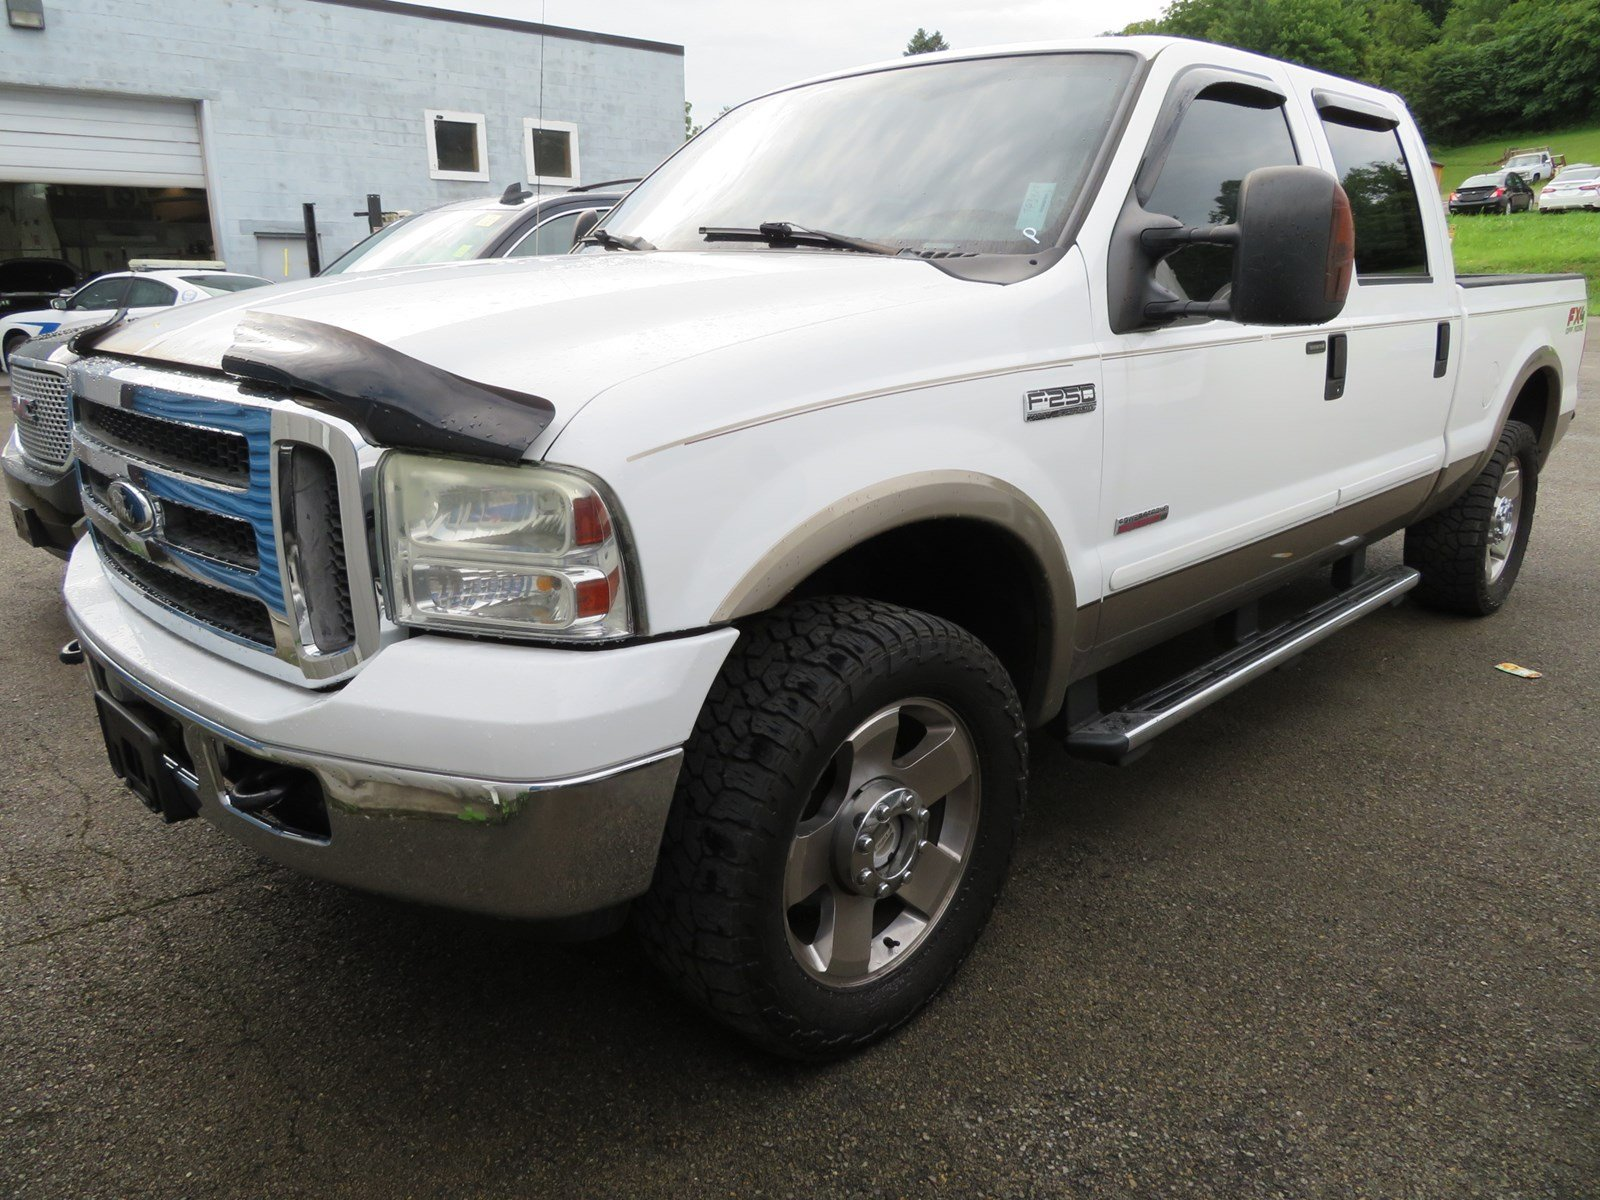 Photo Used 2007 Ford F-250 For Sale at Duncan Suzuki  VIN 1FTSW21PX7EB00327